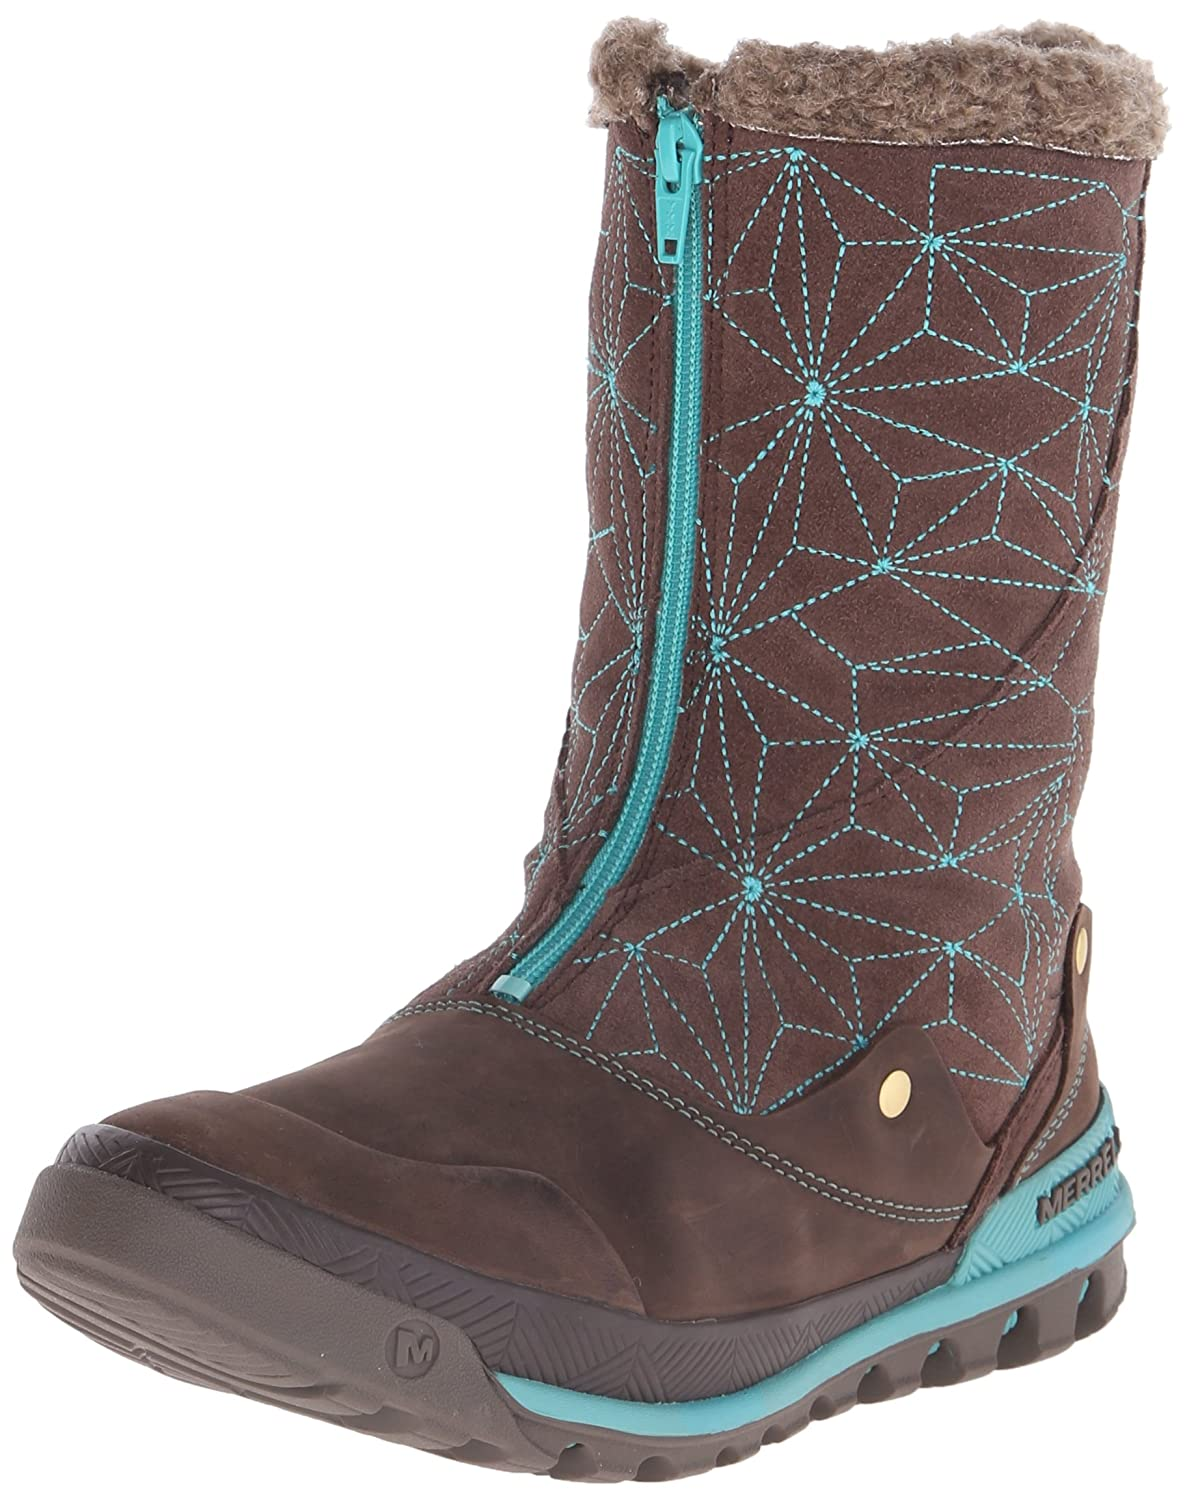 Merrell Women's Silversun Zip Waterproof Winter Boot B00R4L8V0Y 10 B(M) US|Bracken